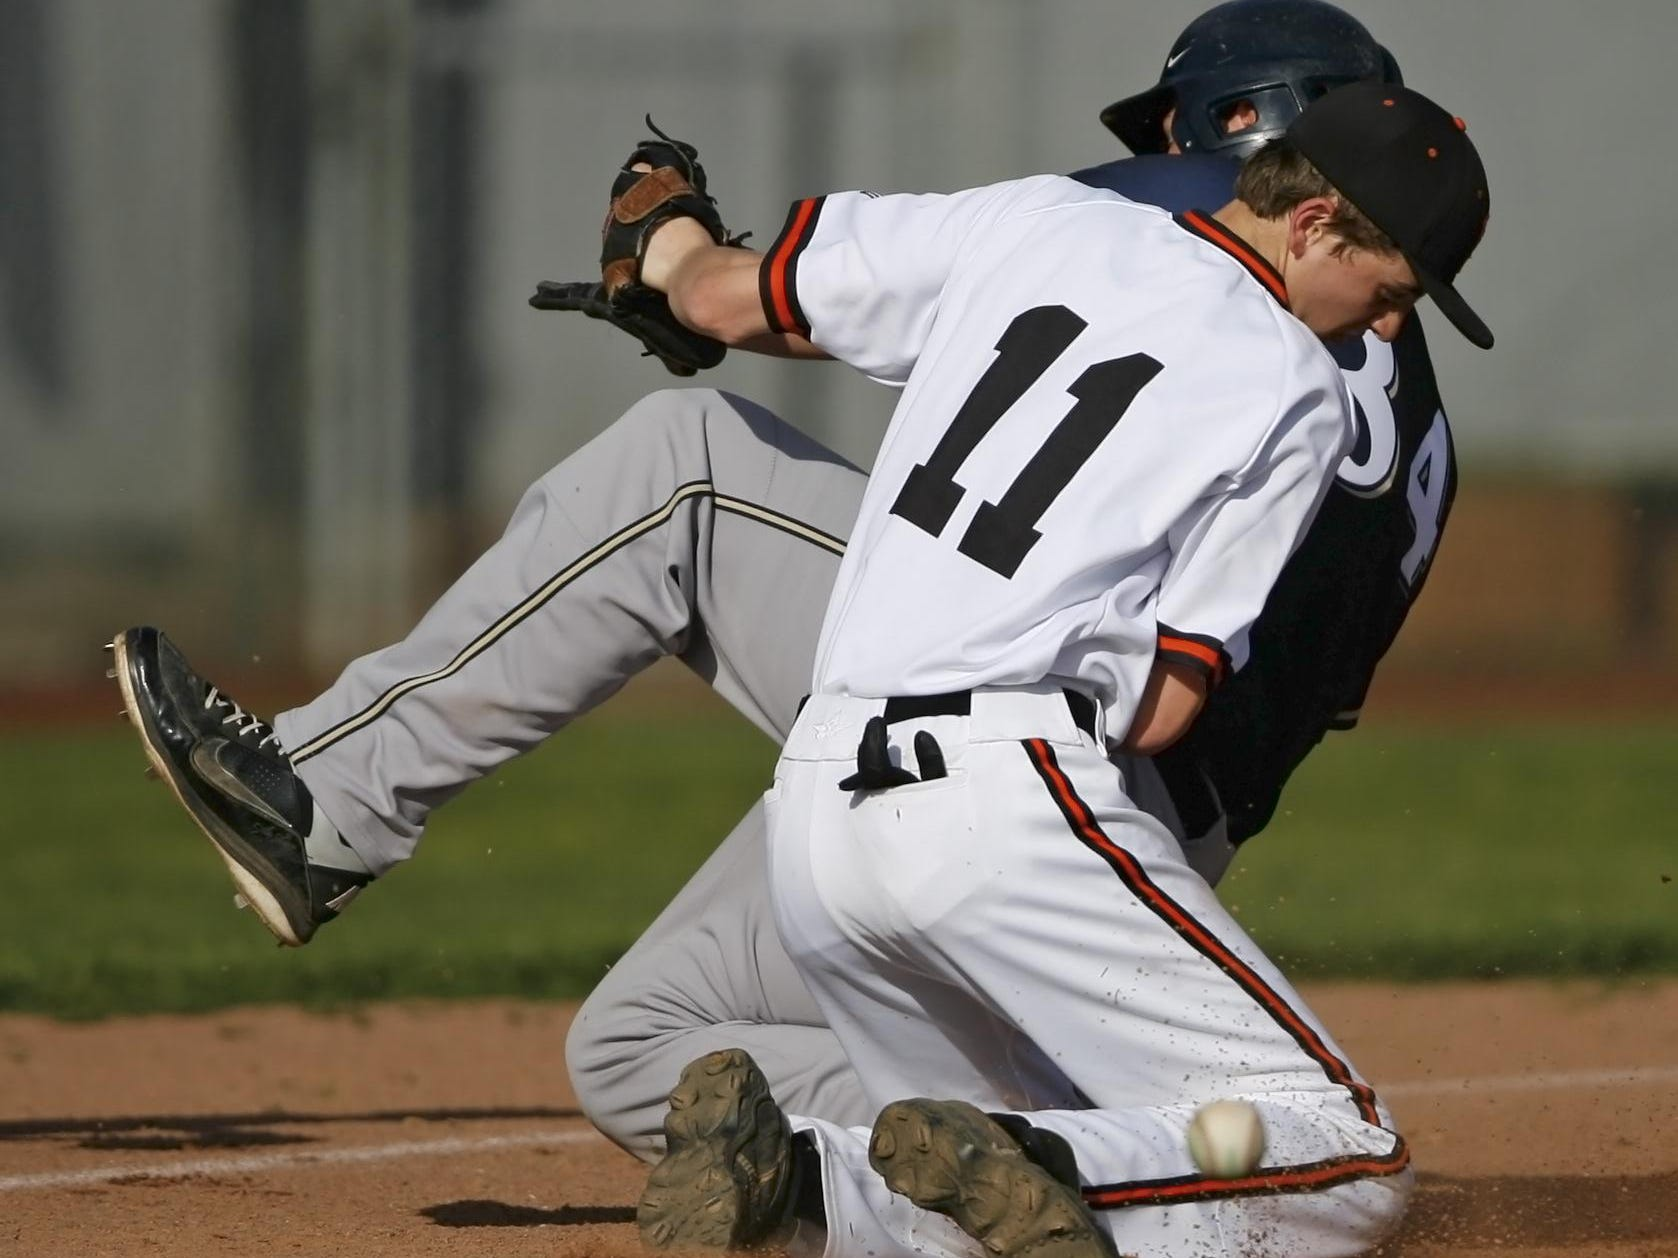 The ball gets away from Silverton third baseman Kirk Martinson as West Albany's Brett Nicholsen slides safely into third during the top of the fifth inning of Silverton's 9-2 loss in a Mid-Willamette Conference baseball game, at Silverton, on Wednesday, Apr. 30, 2914.